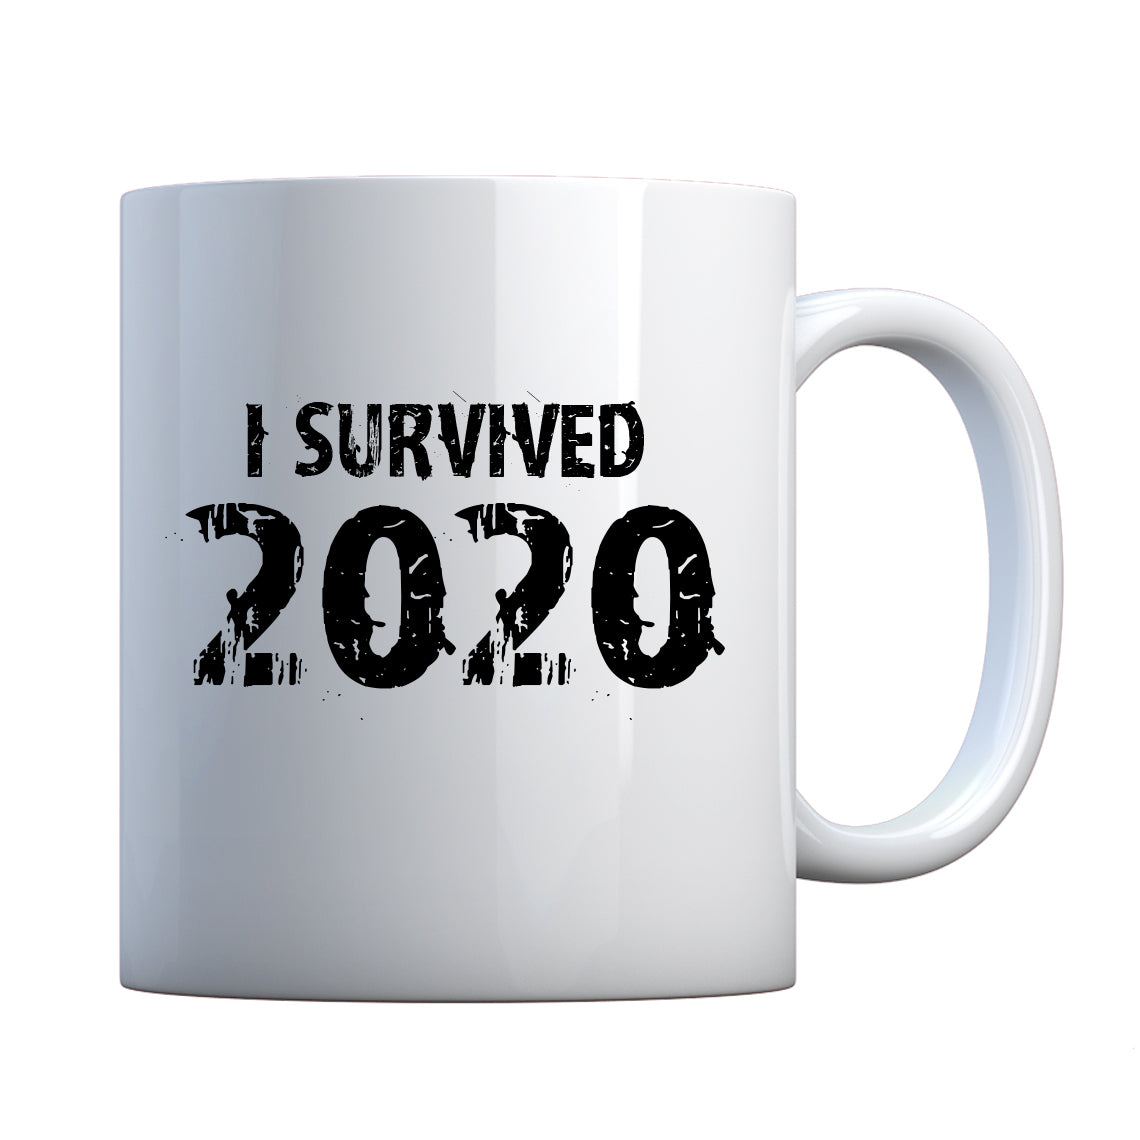 I Survived 2020 Ceramic Gift Mug